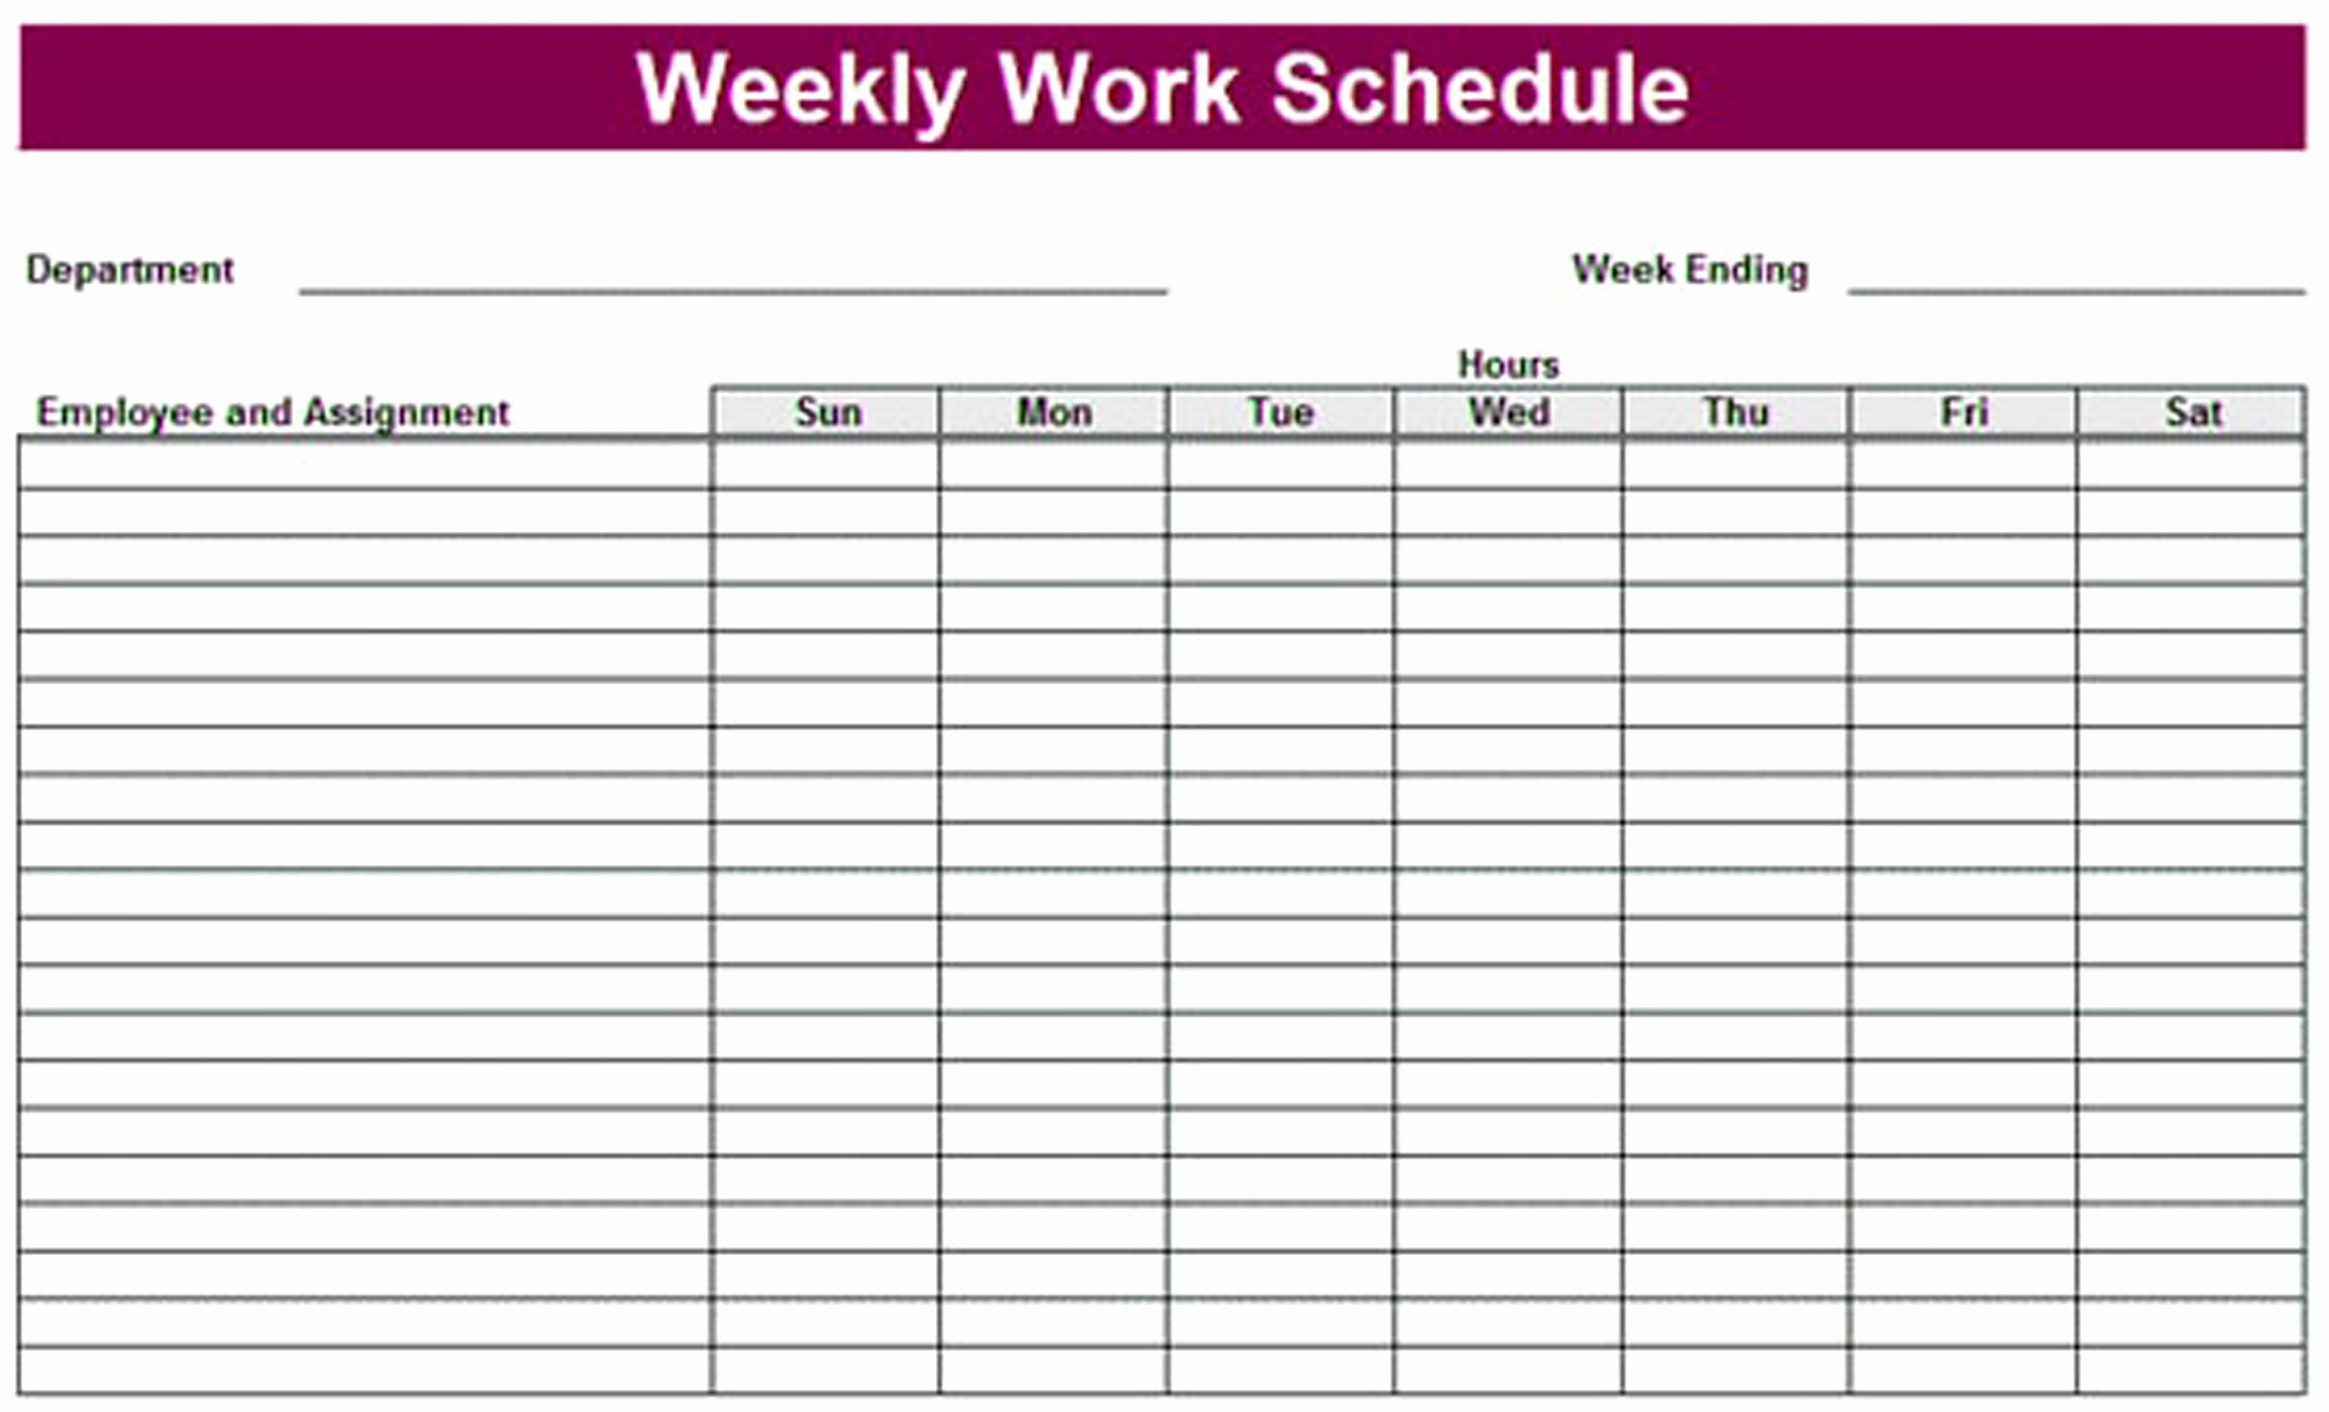 Microsoft Excel Weekly Schedule Template Inspirational Printable Weekly Schedule Template & Excel Planner